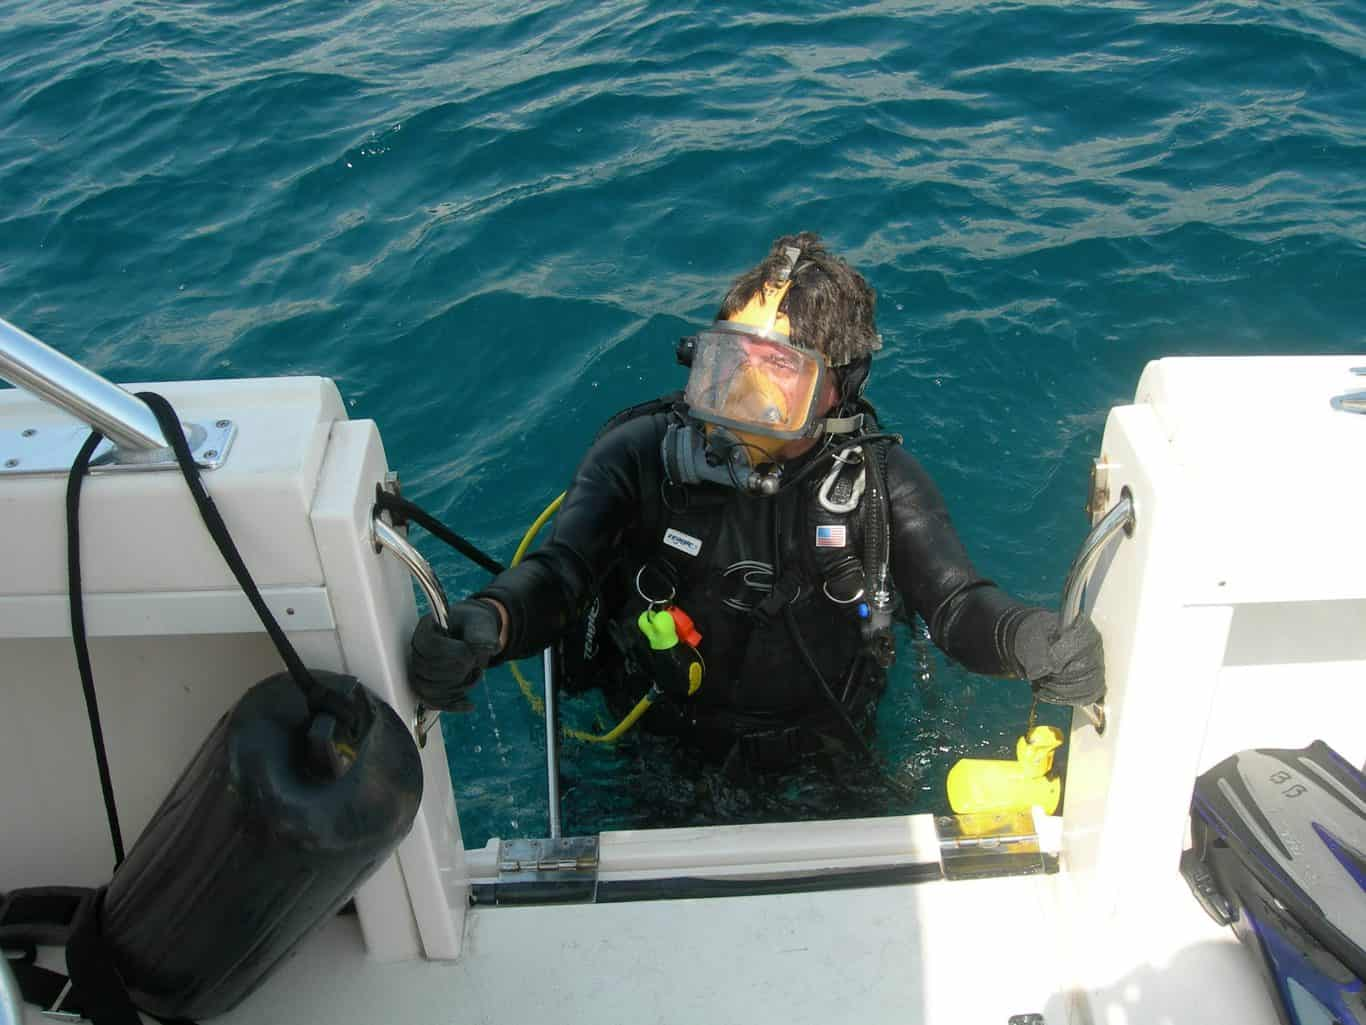 Boat Based Diving Operations Training